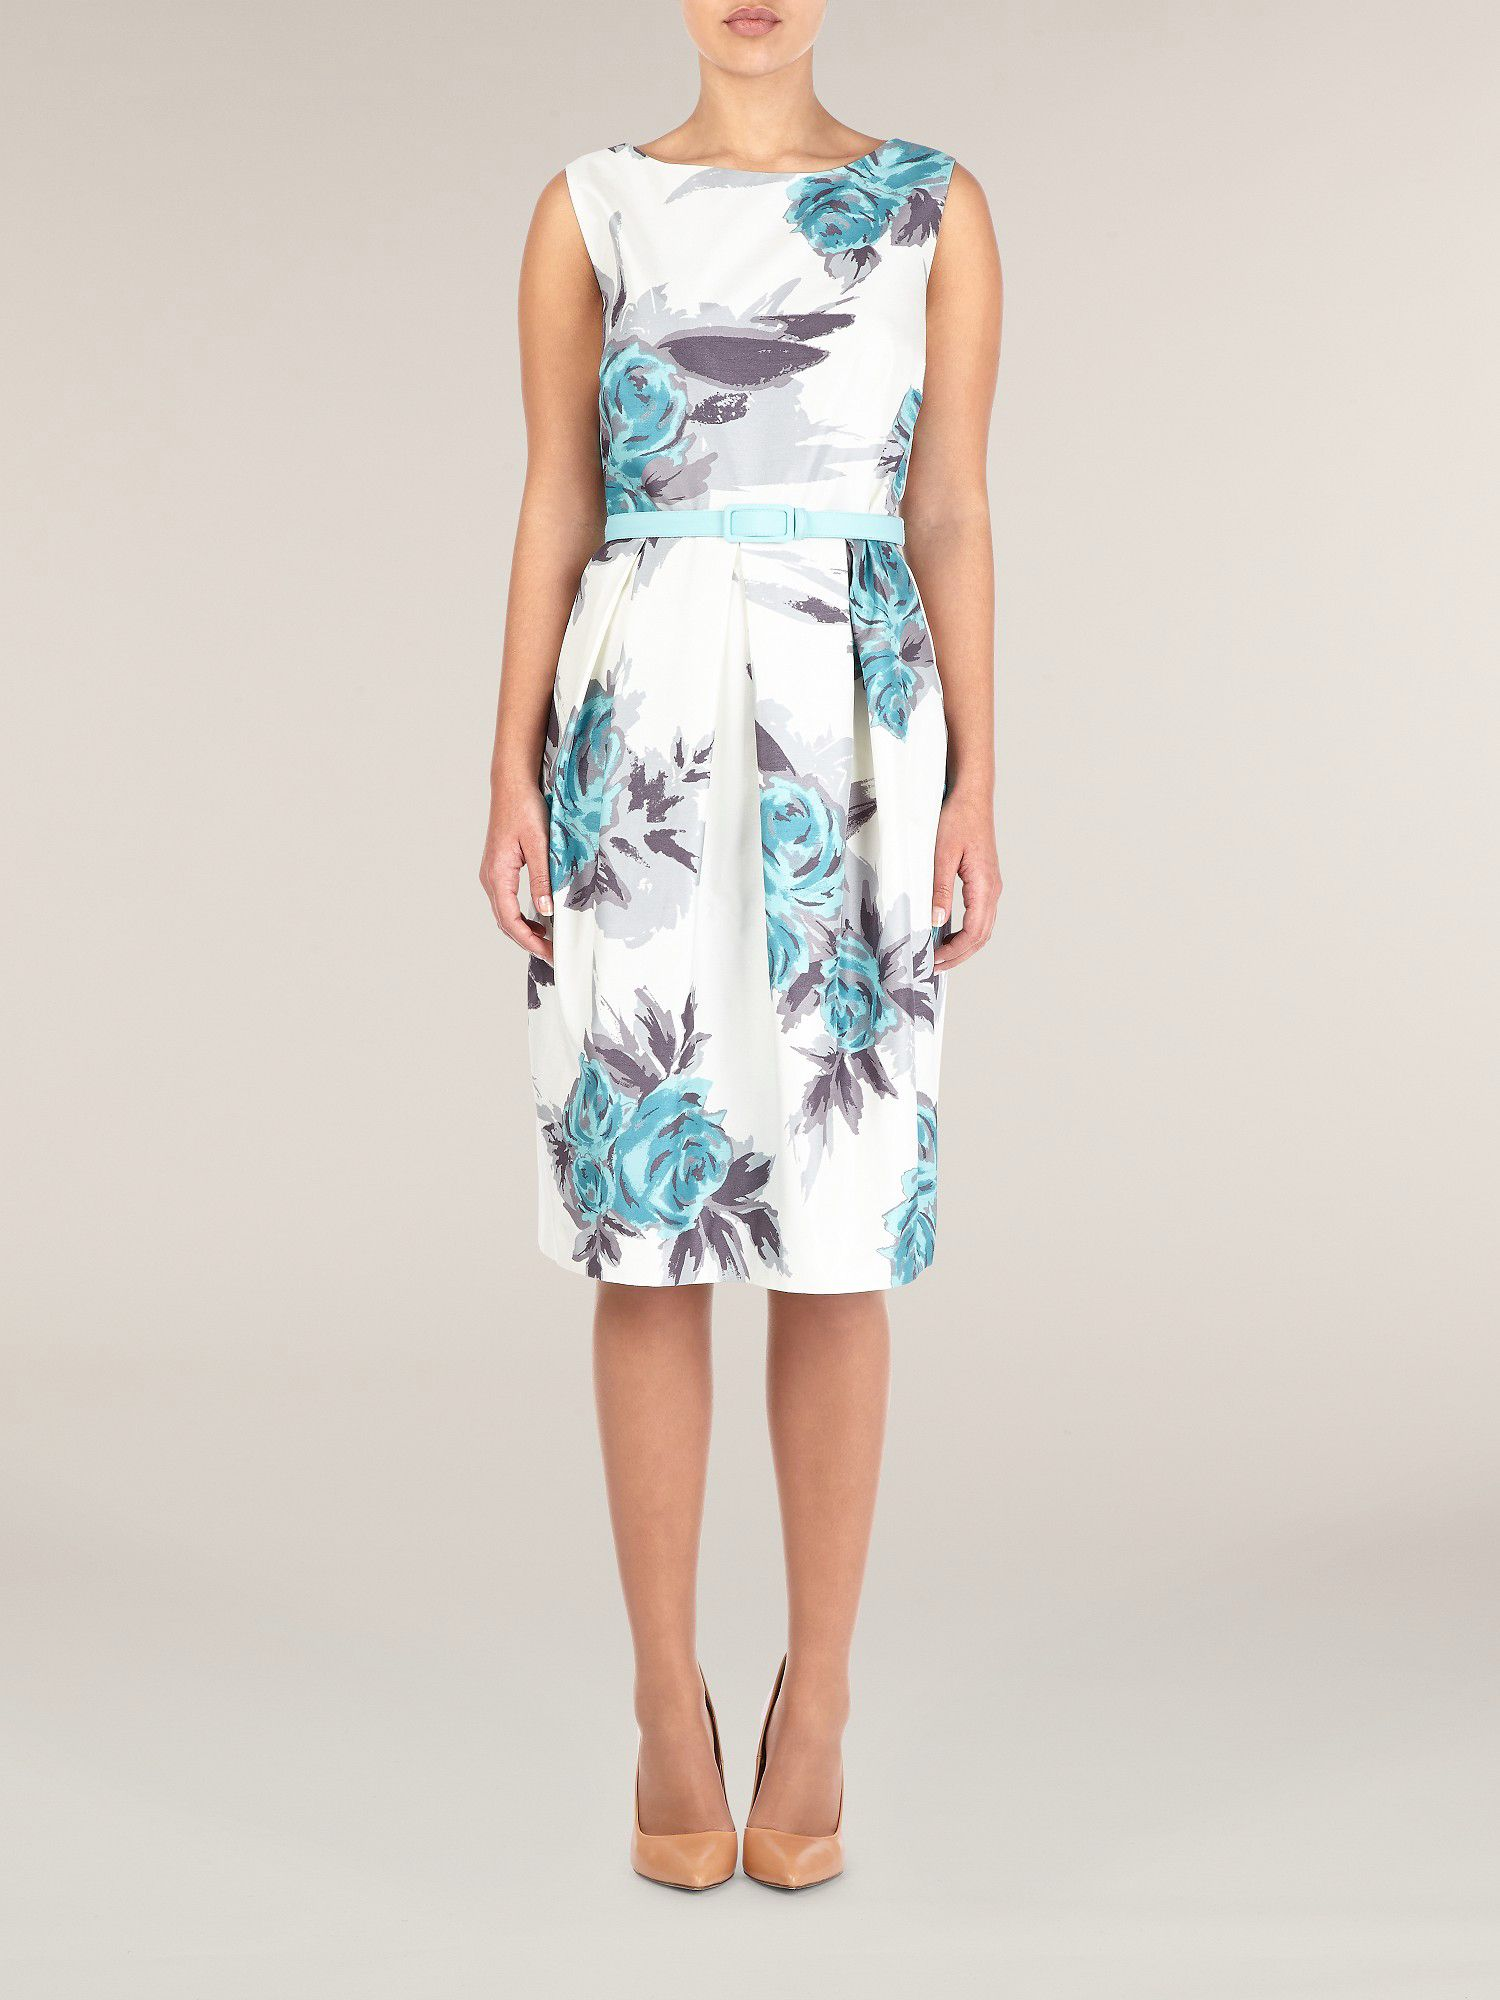 Aqua floral print shift dress